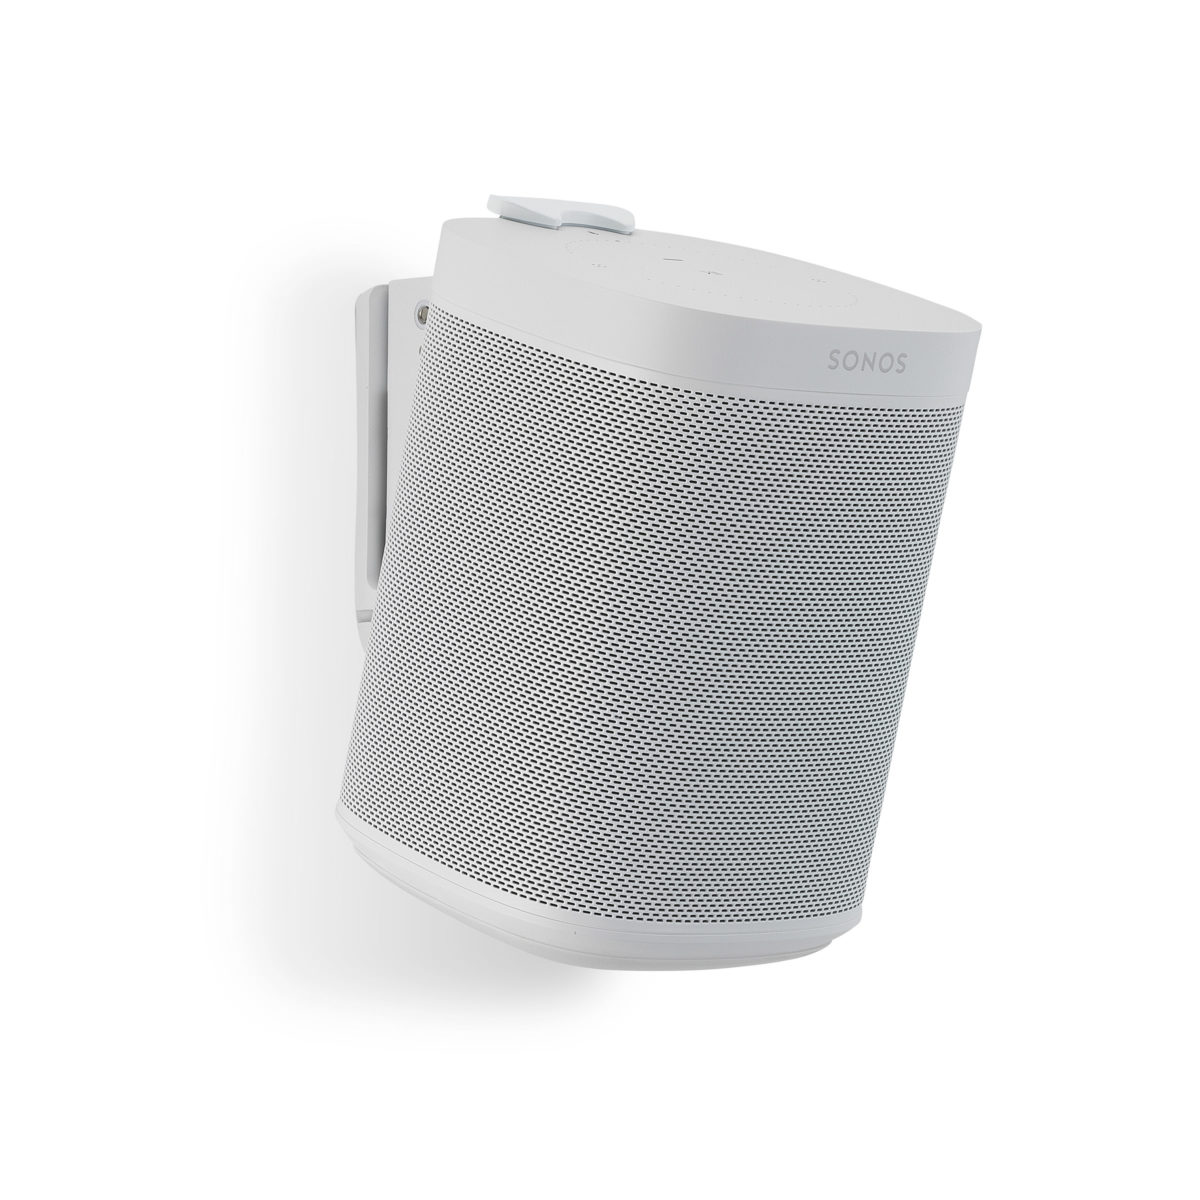 Sonos one muurbeugel wit 7